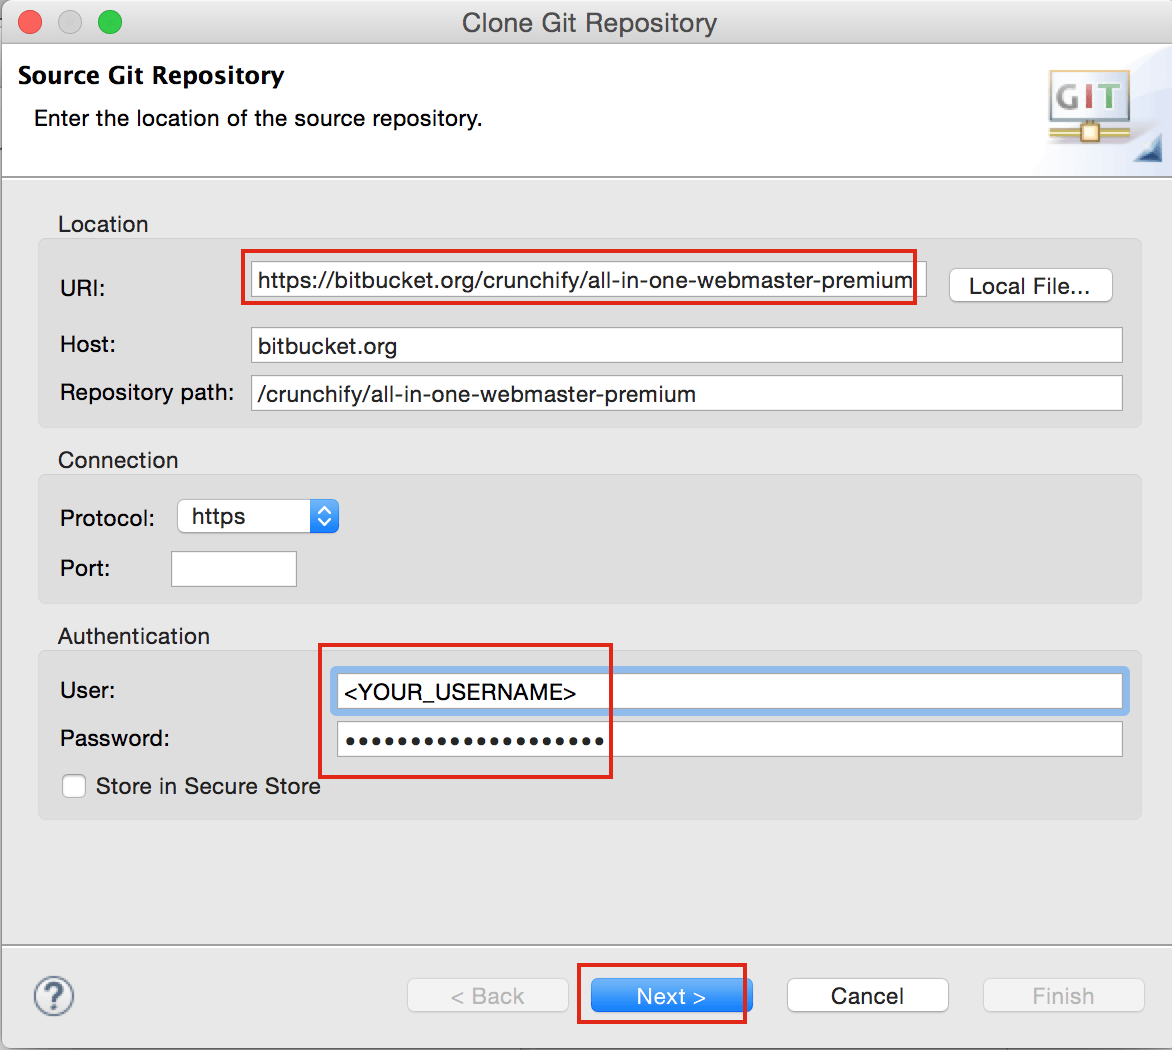 Clone Repository Options Page in Eclipse